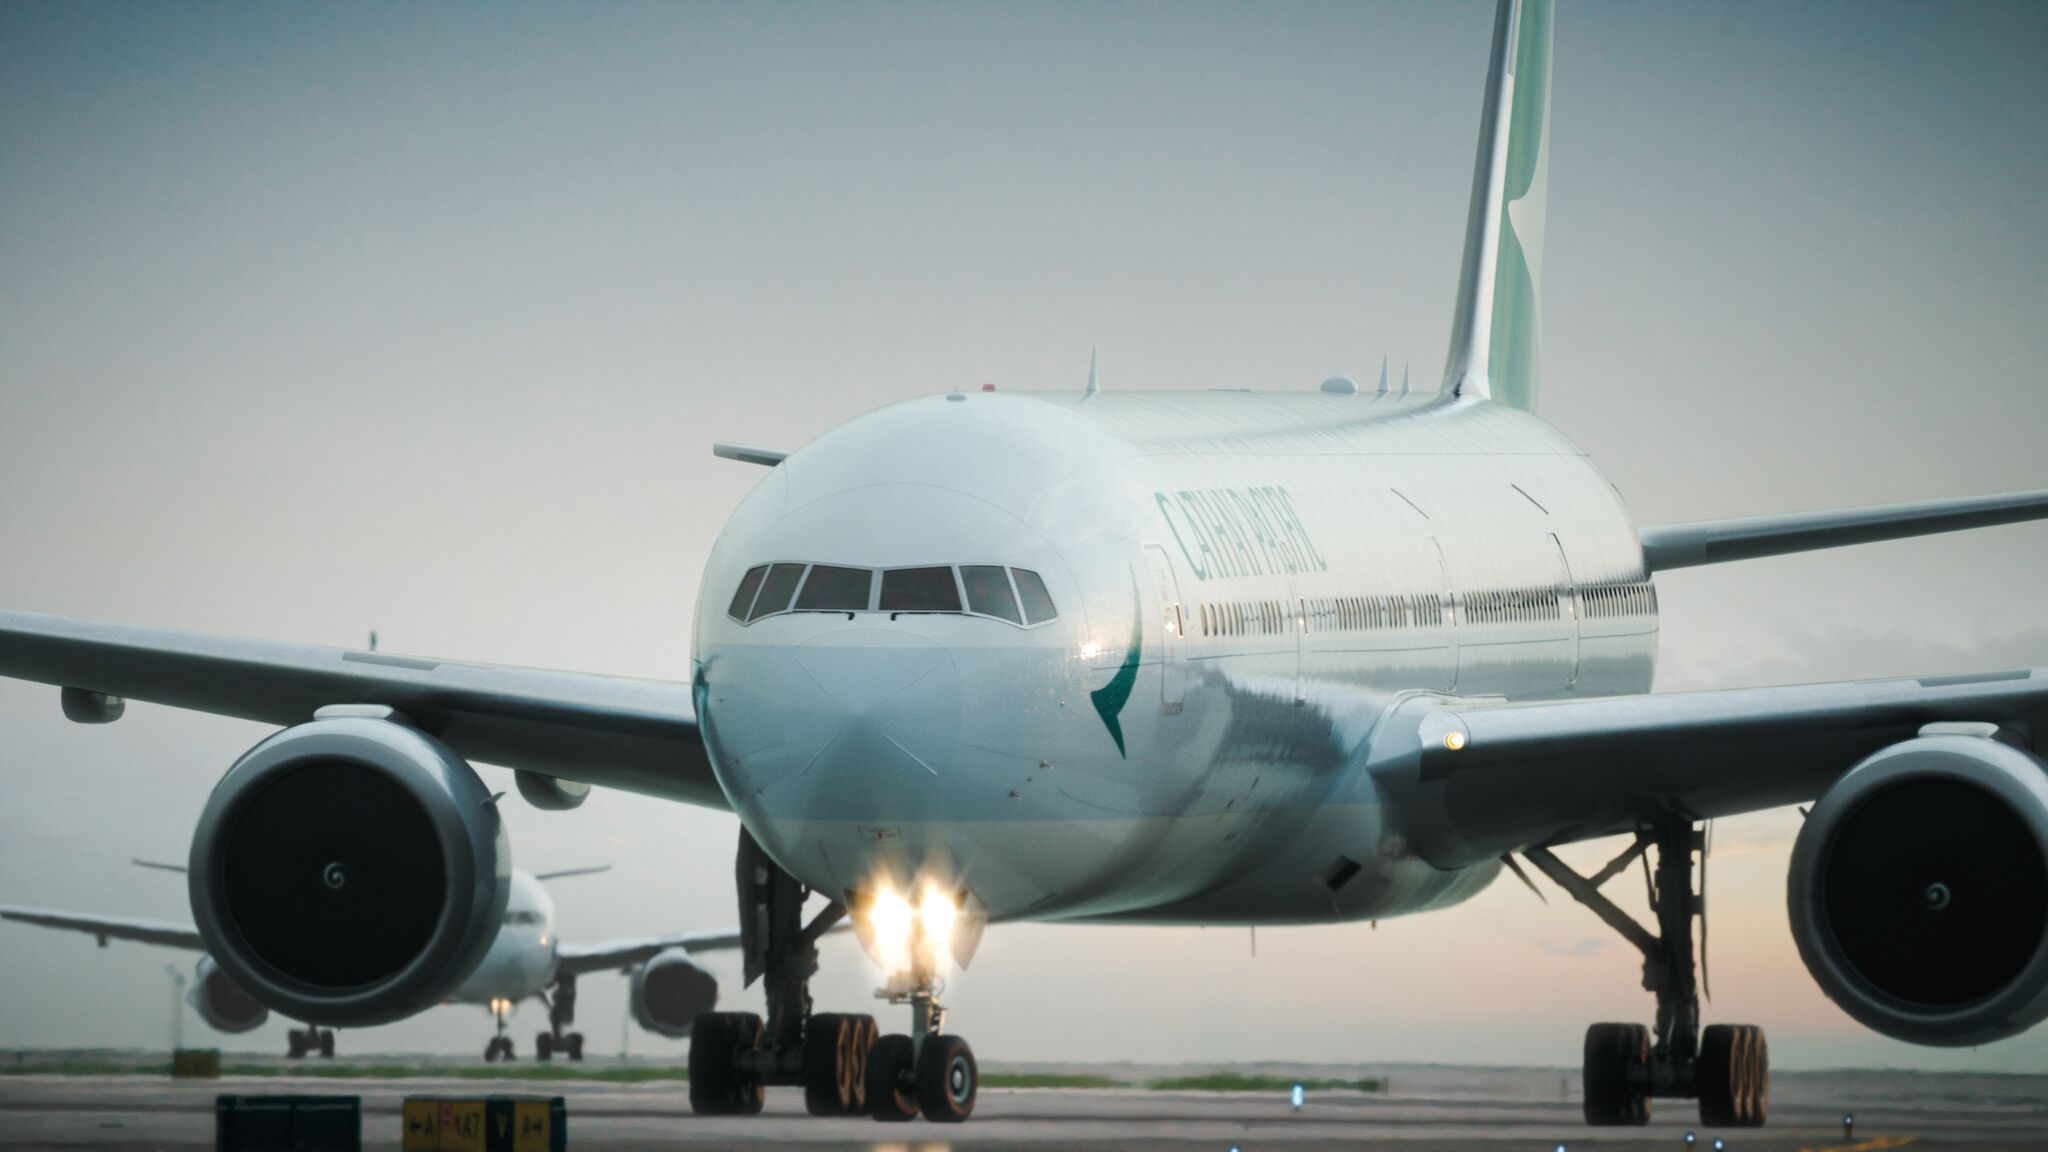 The Airbus A350-900 is also designed with added leg room, pressurized cabin comfort and LED lighting to fight the effects of jet lag.{&amp;nbsp;}(Image: Courtesy Cathay Pacific)<p></p>